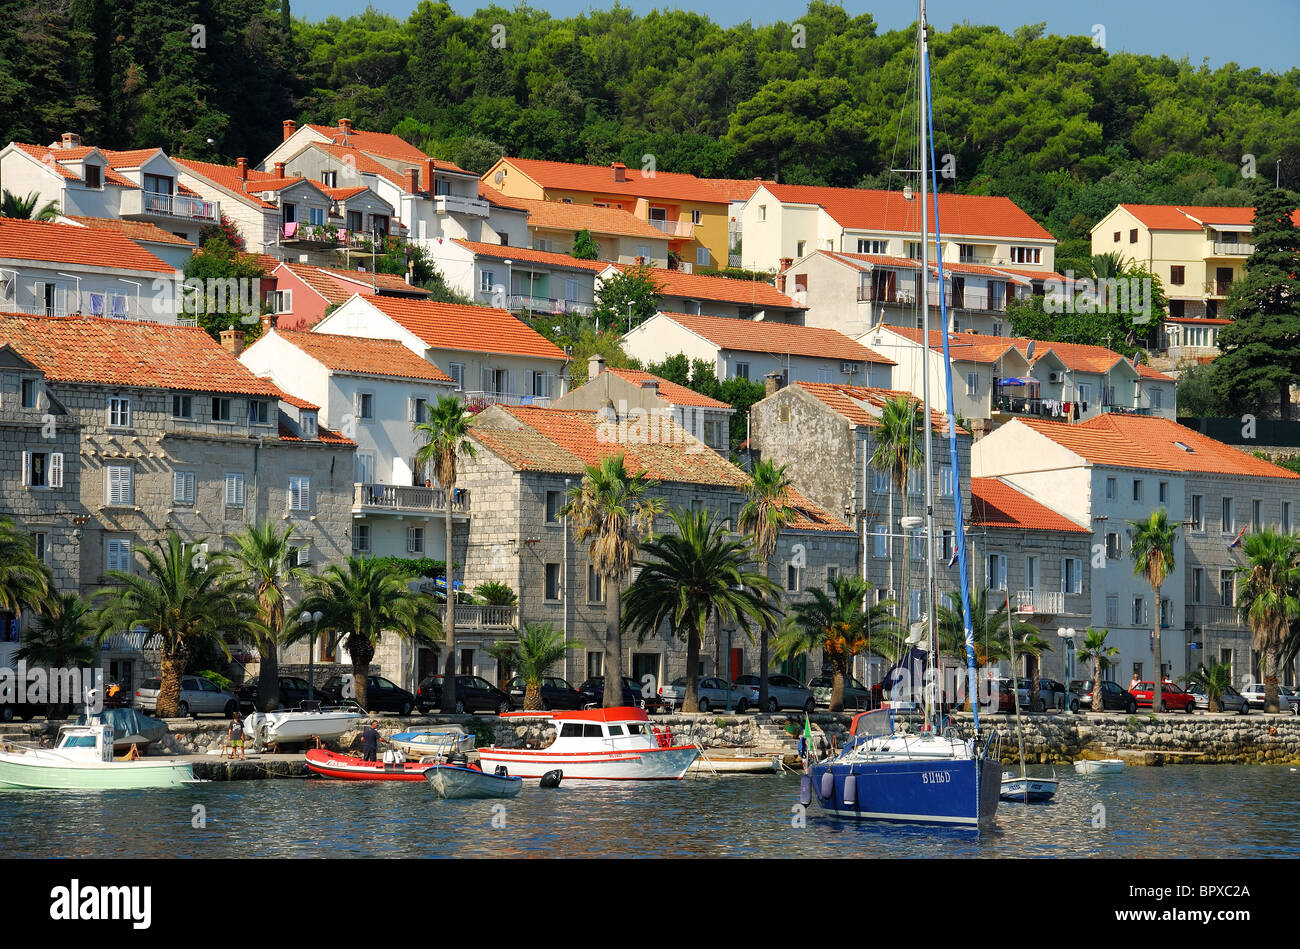 KORCULA, CROATIA. The seafront at Korcula Town on Korcula Island. - Stock Image